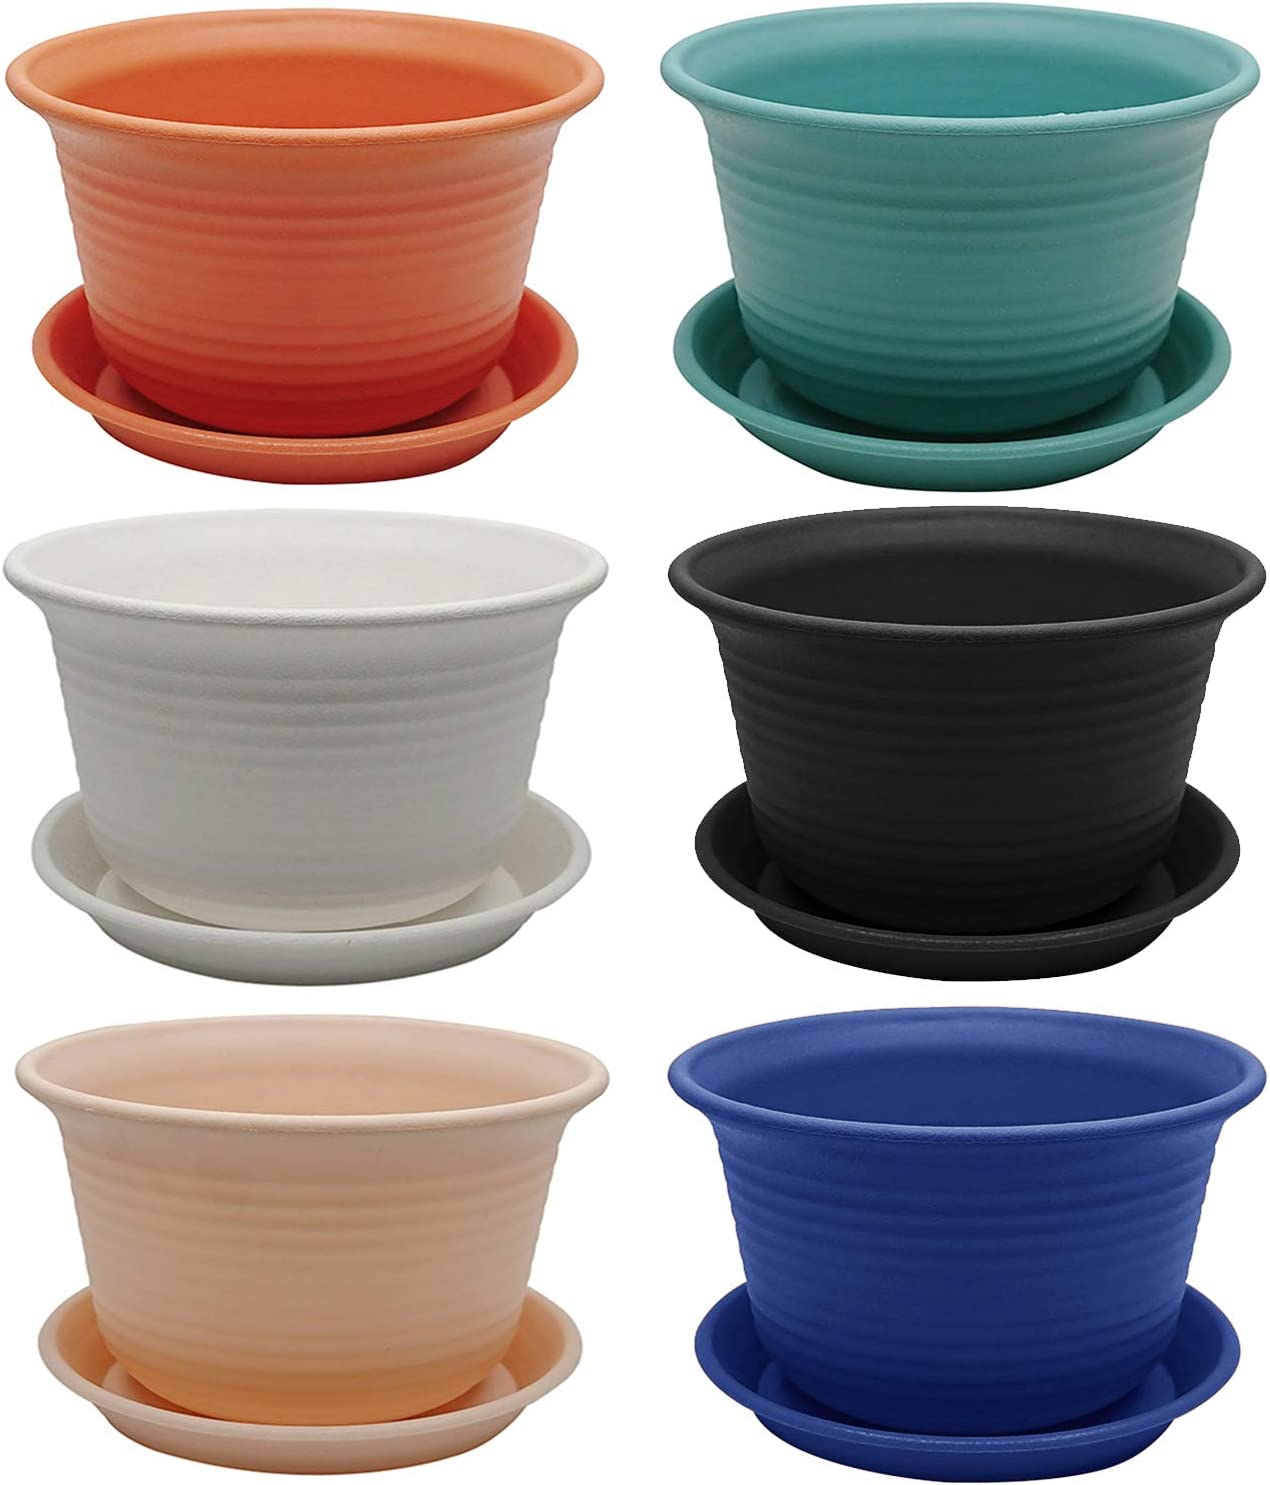 WANBAO 6 Inch Planters Plastic Pots Seed Nursery with Drainage Pallet for All House Plants, Multi Colored Set of 6.